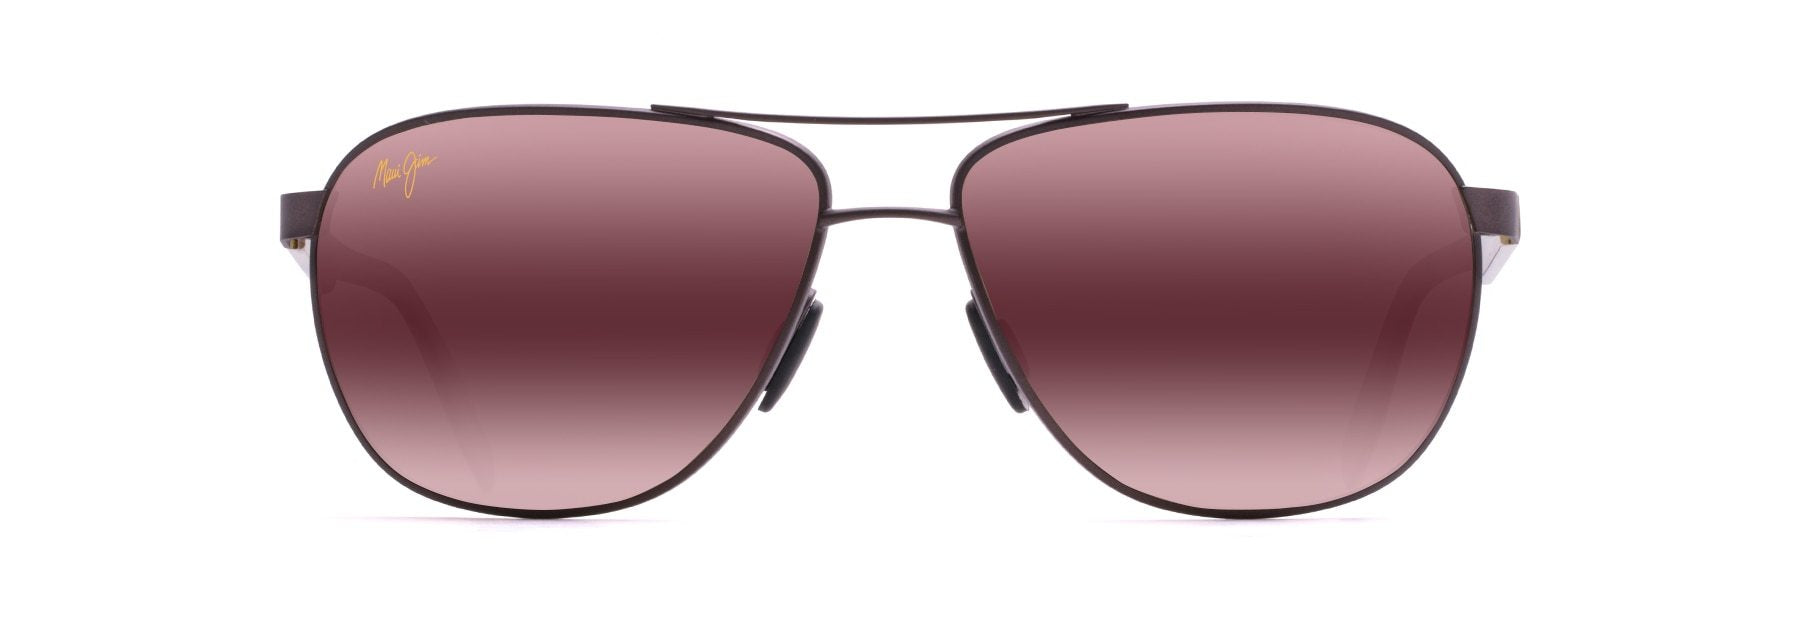 MyMaui Castles MM728-006 Sunglasses